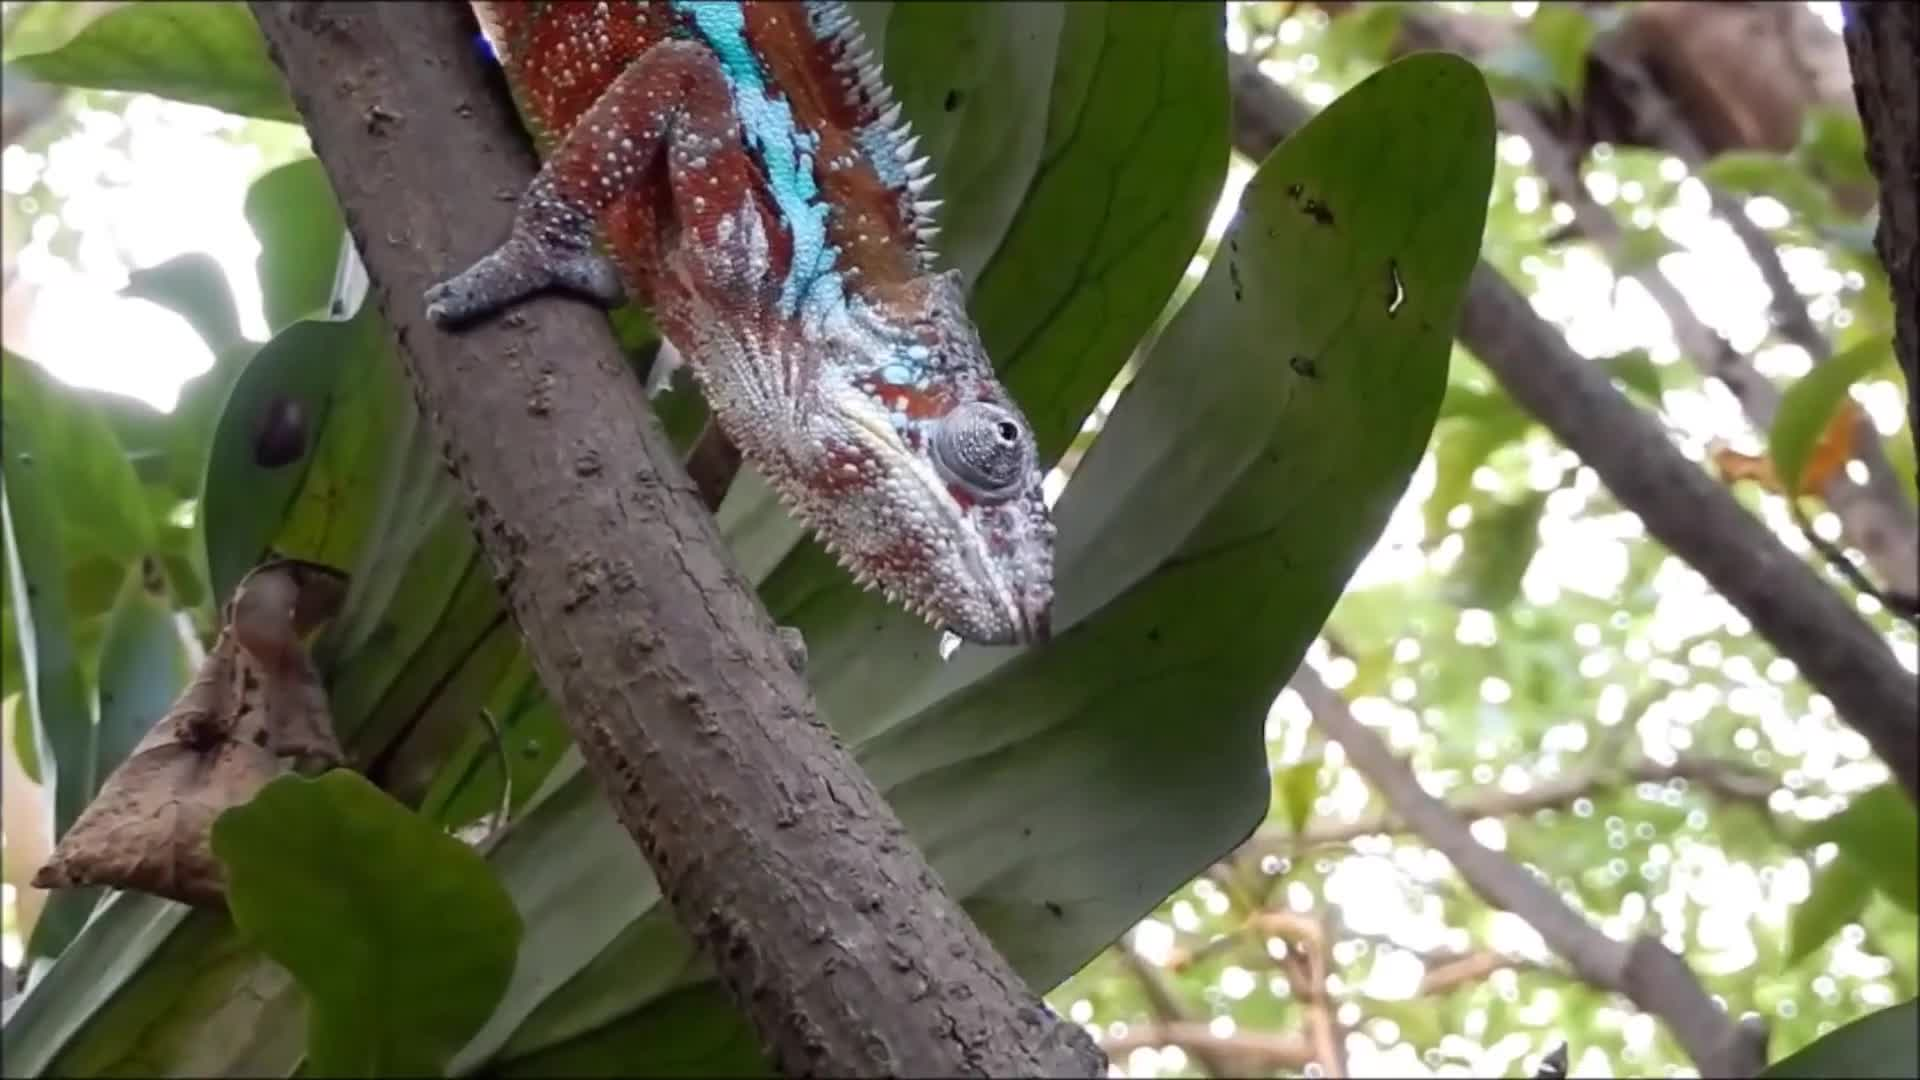 Chameleon eat hunting caught patience